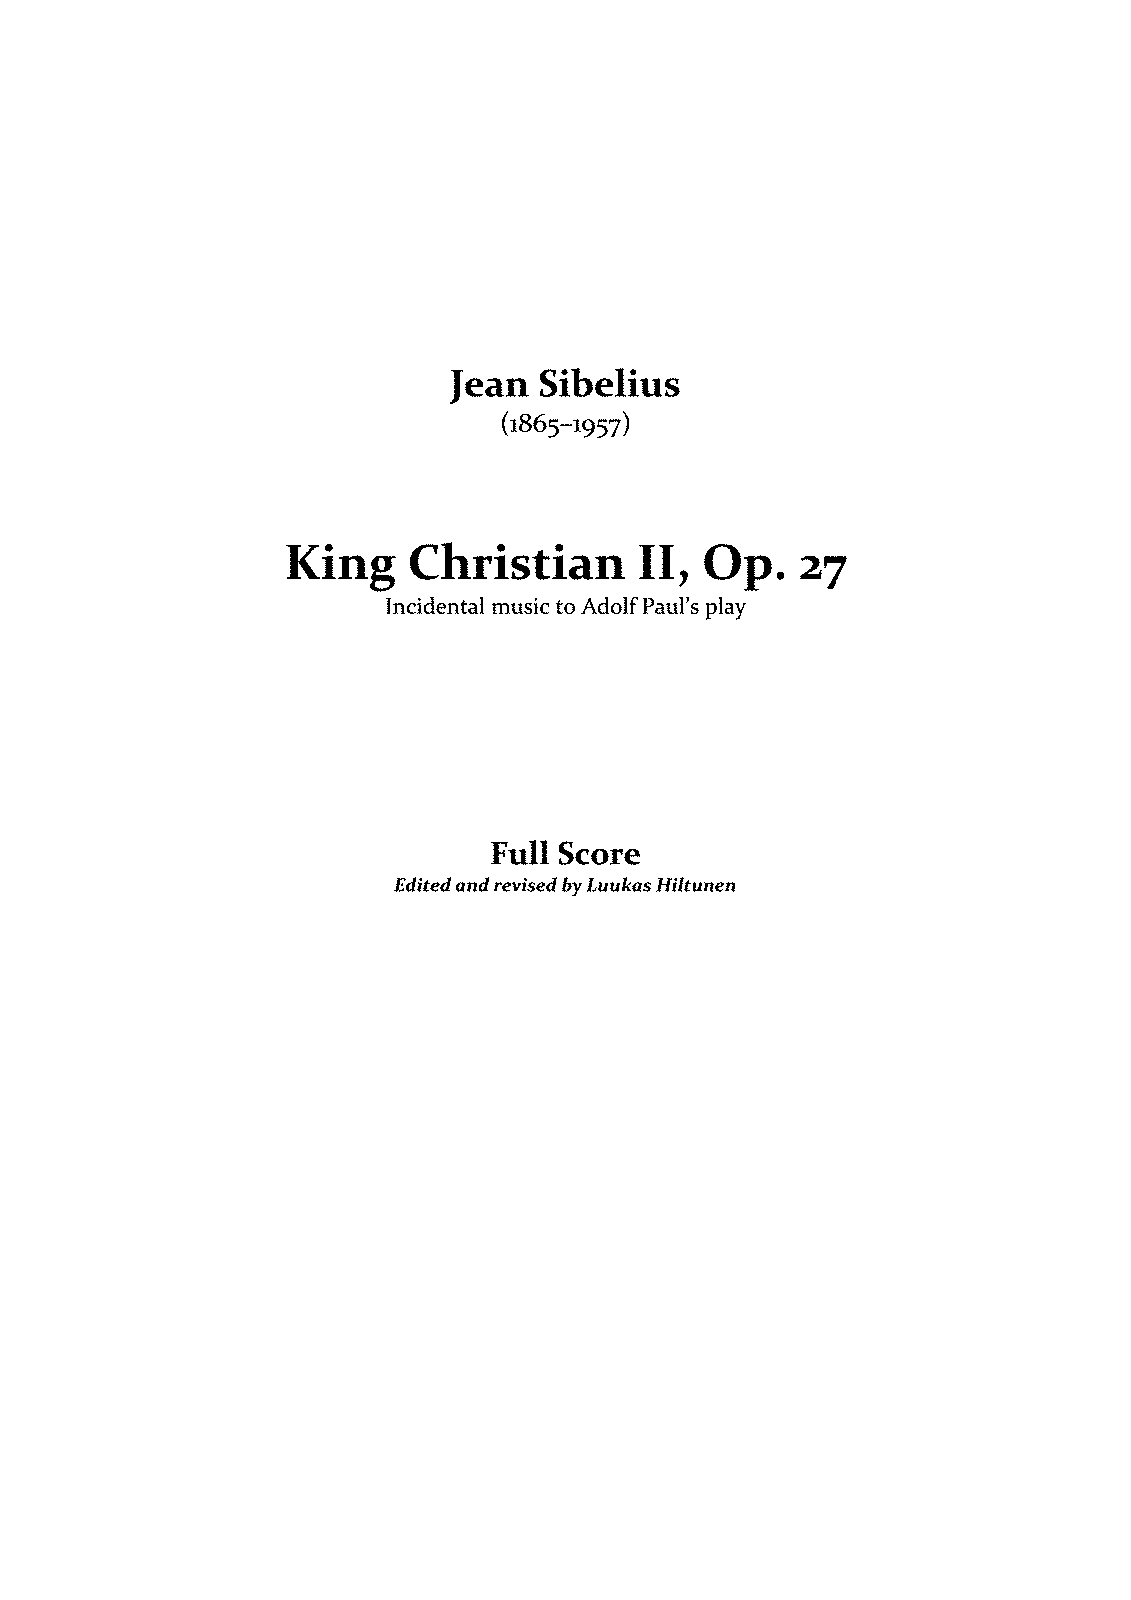 PMLP484541-King Christian II title, contents, instrumentation.pdf